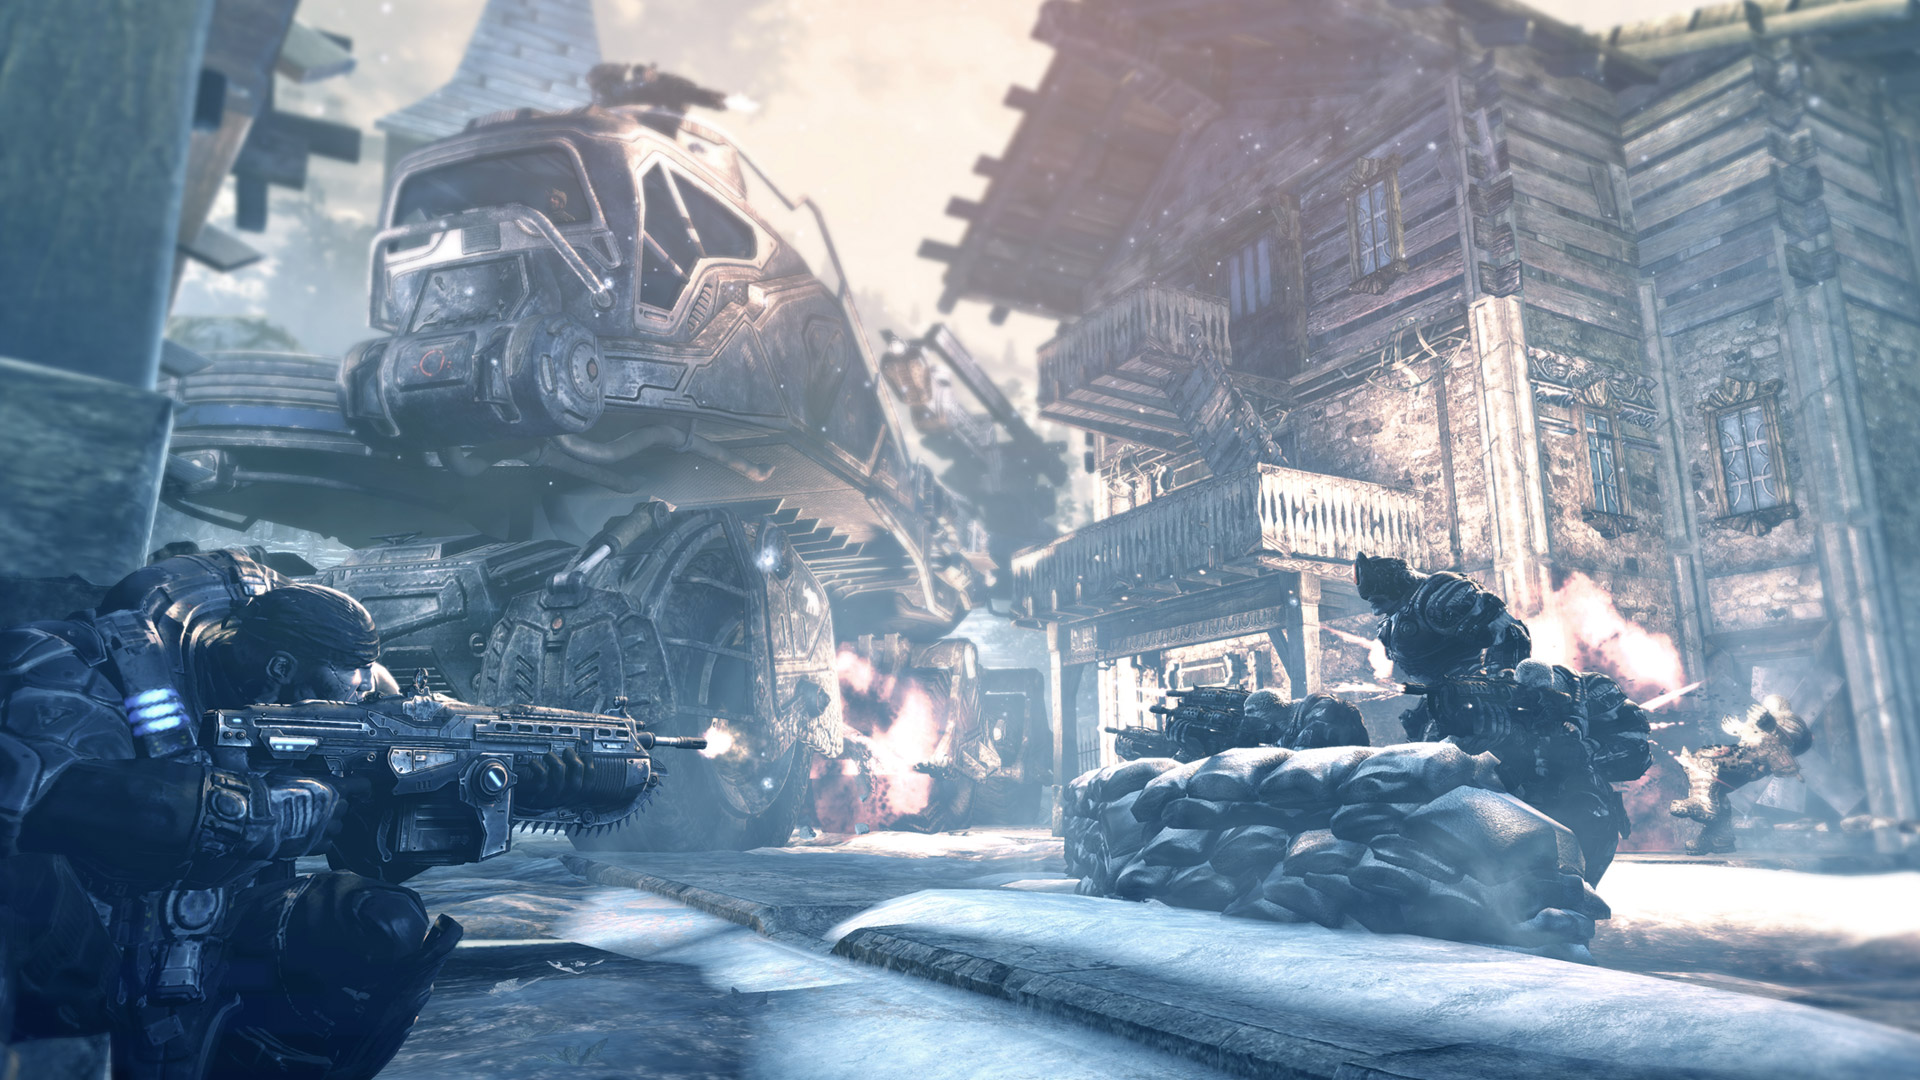 Gears of War 2 Wallpaper in 1920x1080